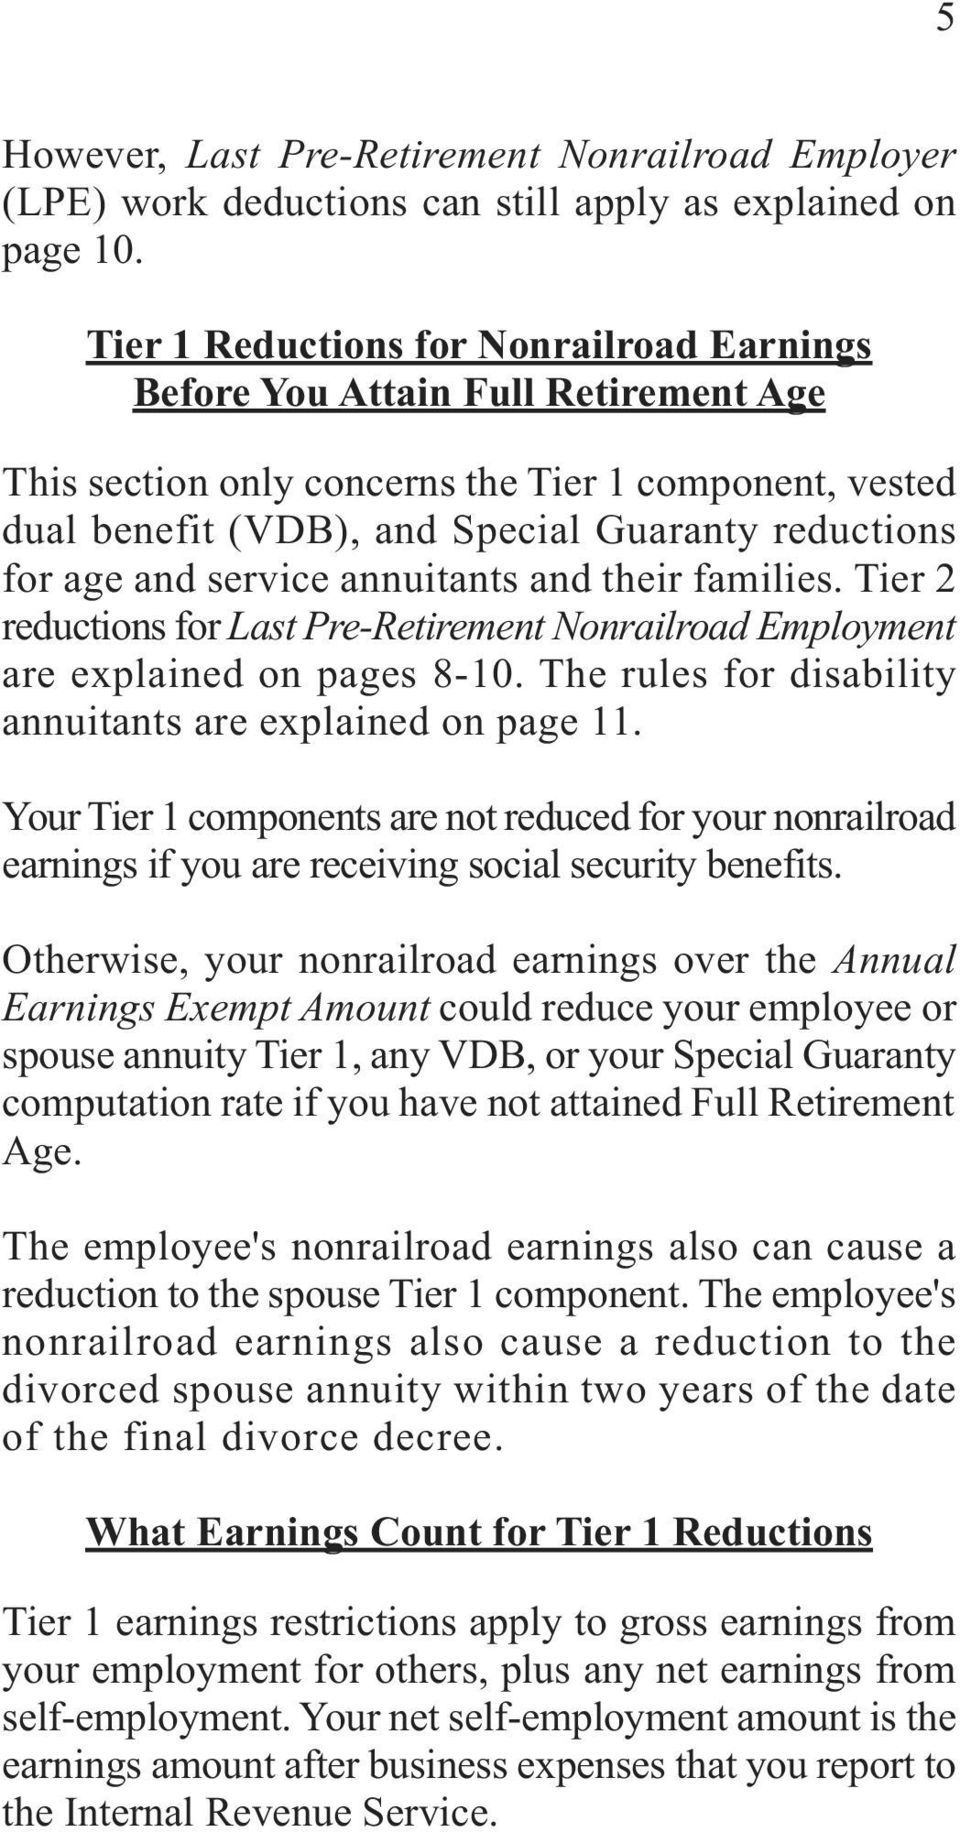 and service annuitants and their families. Tier 2 reductions for Last Pre-Retirement Nonrailroad Employment are explained on pages 8-10. The rules for disability annuitants are explained on page 11.